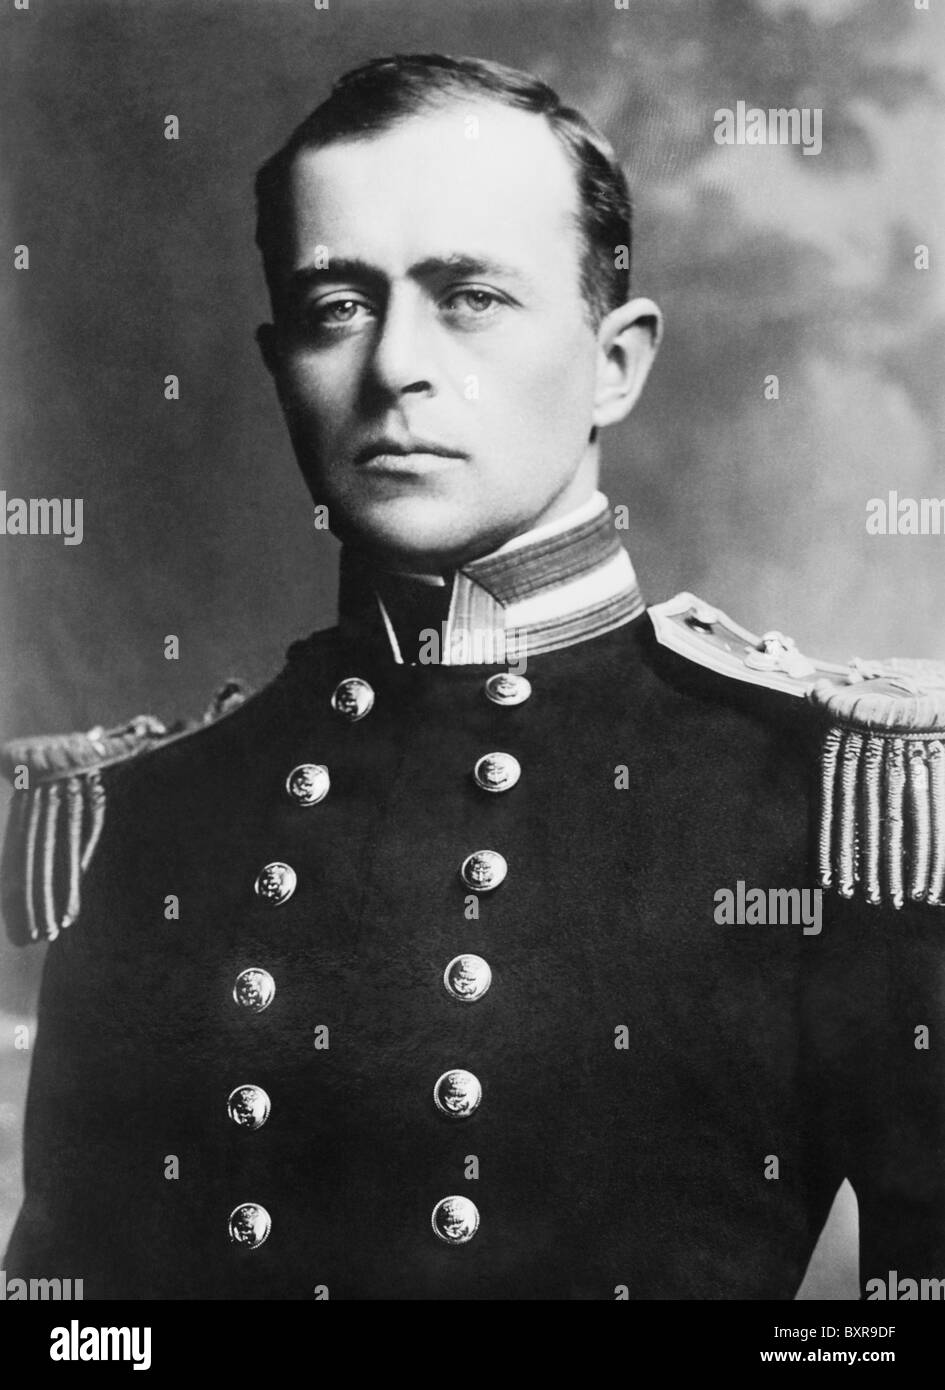 Vintage portrait photo of British Royal Navy officer and polar explorer Captain Robert Falcon Scott (1868 - 1912). - Stock Image